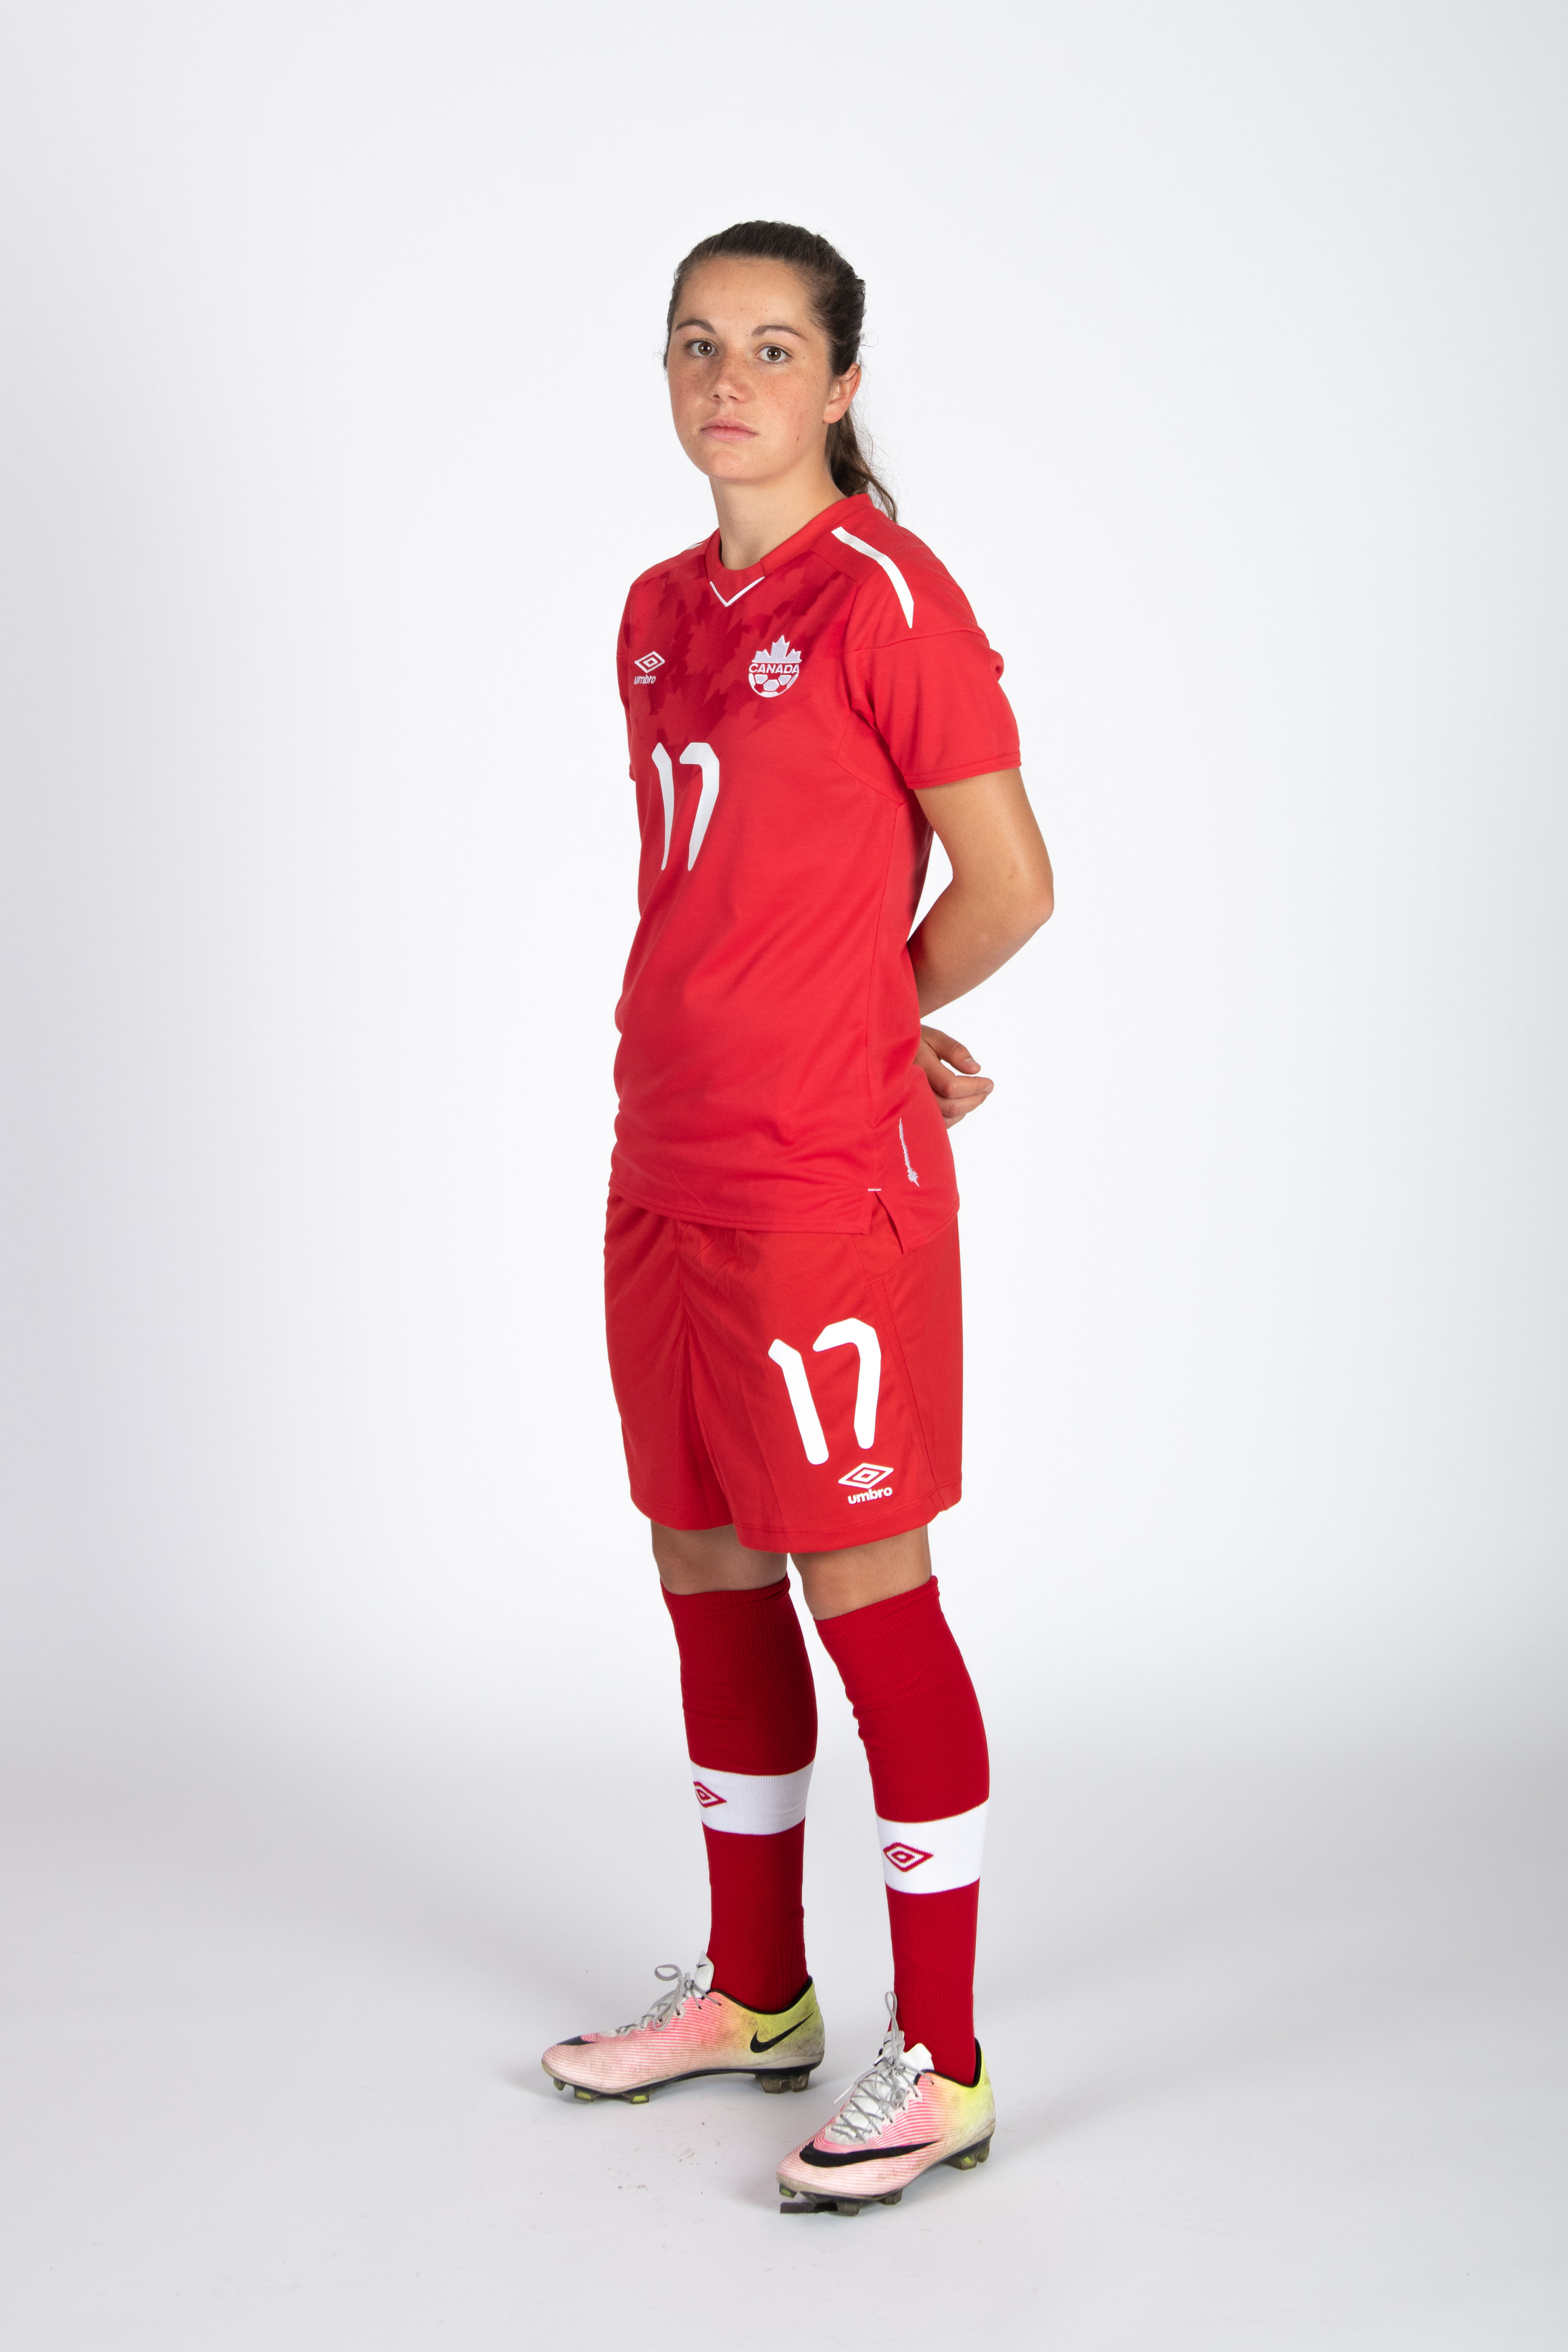 20180604_CANWNT_Fleming_byBazyl20